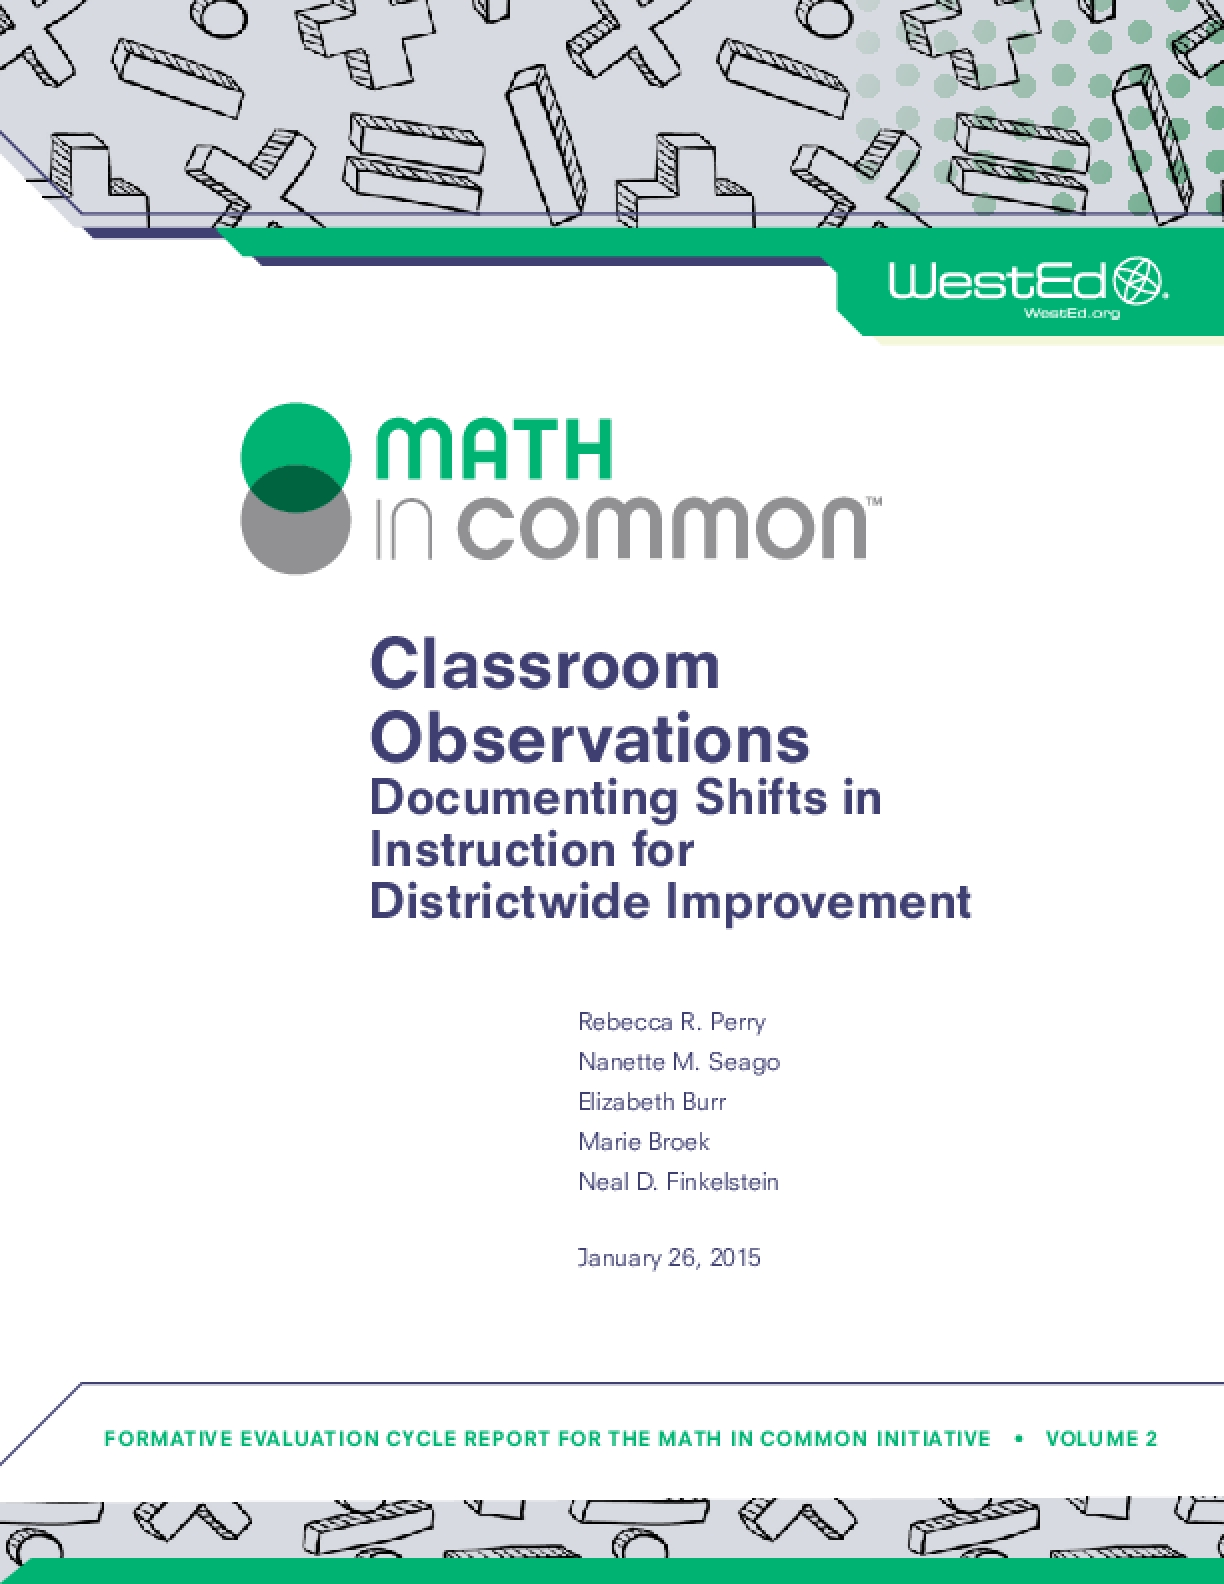 Classroom Observations: Documenting Shifts in Instruction for Districtwide Improvement